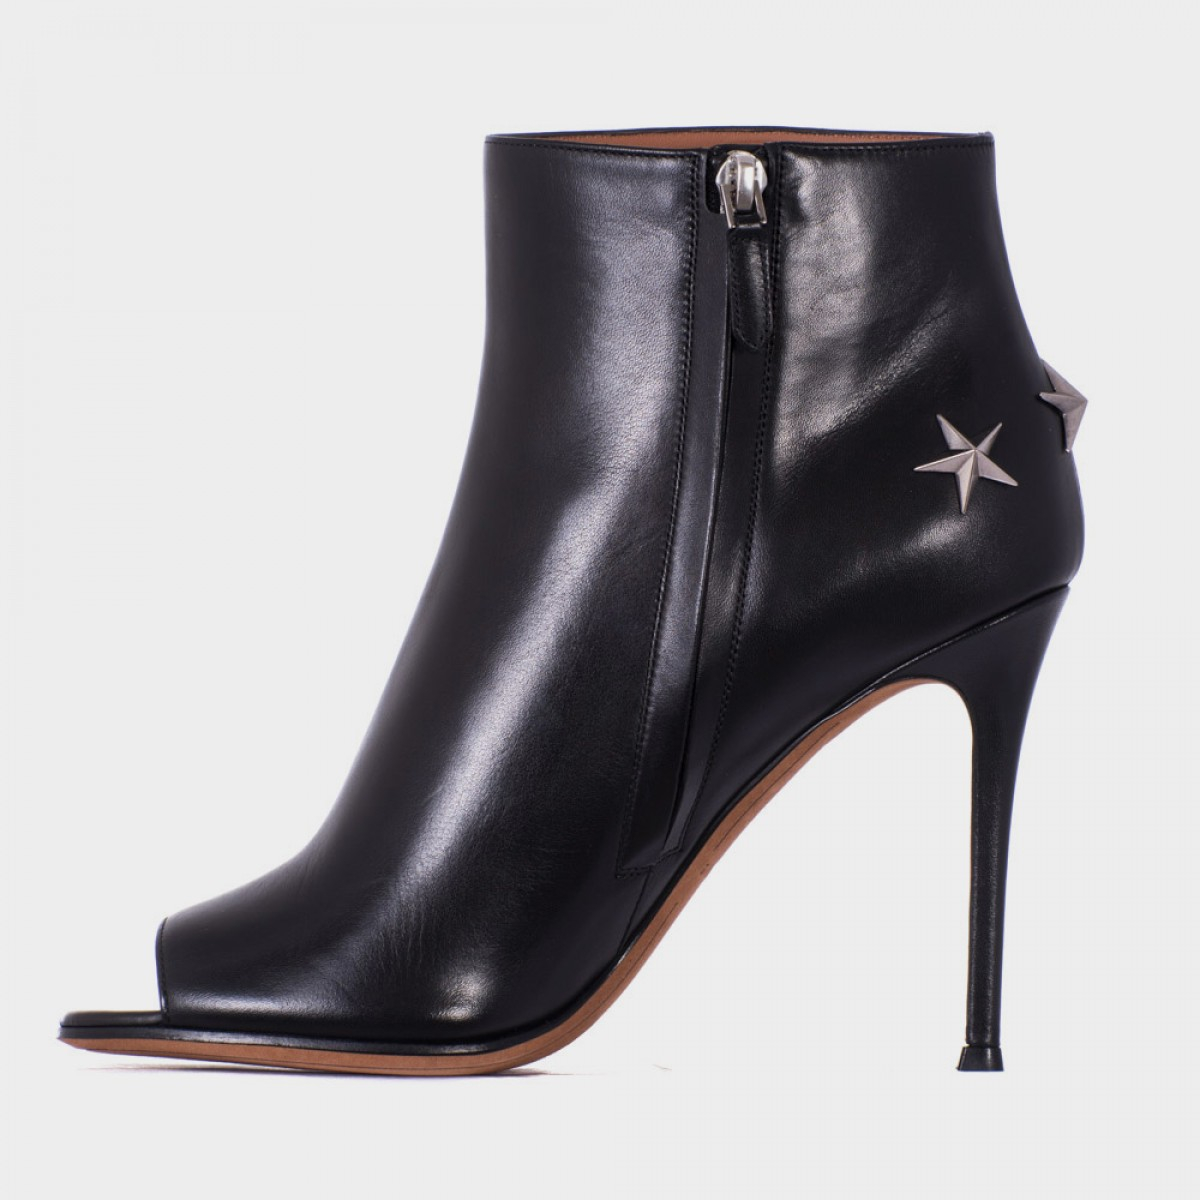 givenchy open toe boots in black